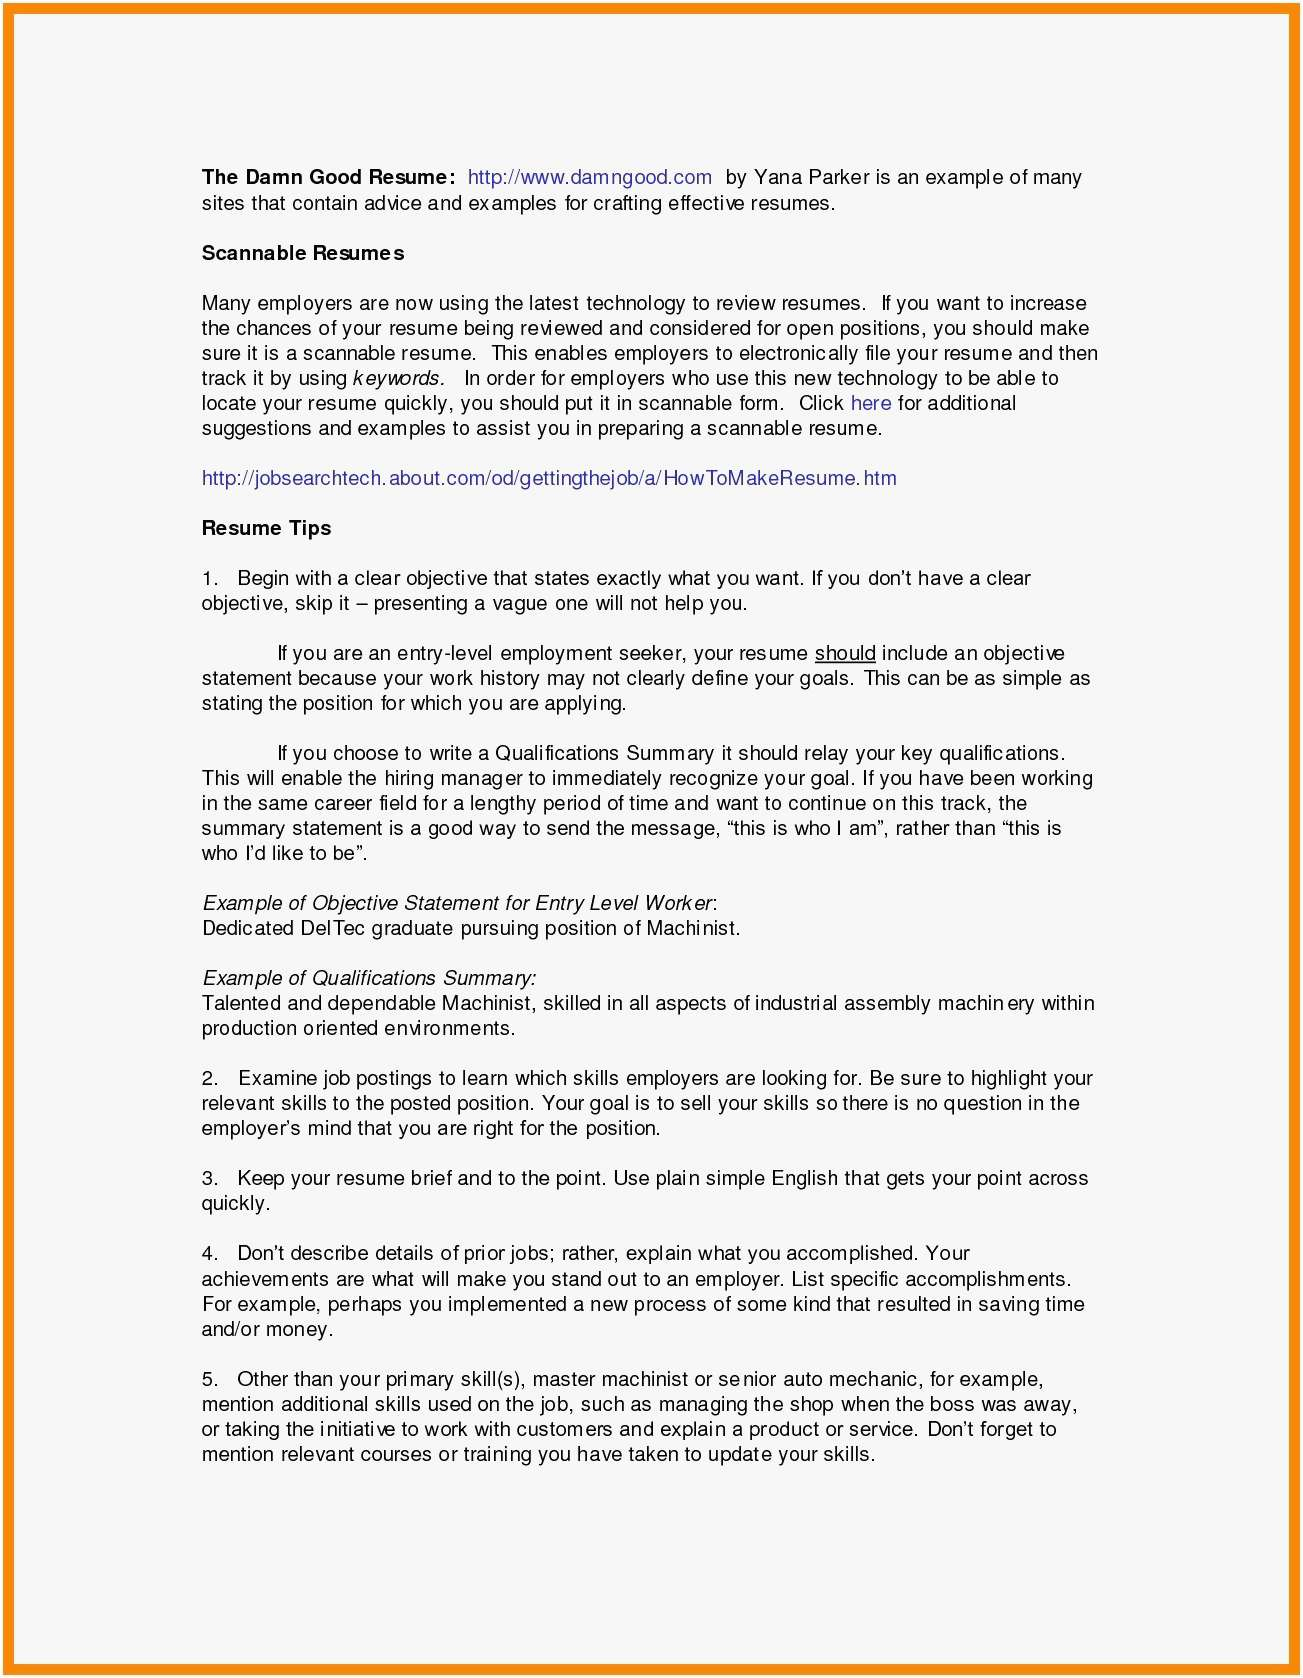 Daycare Resume Template - Simple Business Plan Template New Home Daycare Business Plan